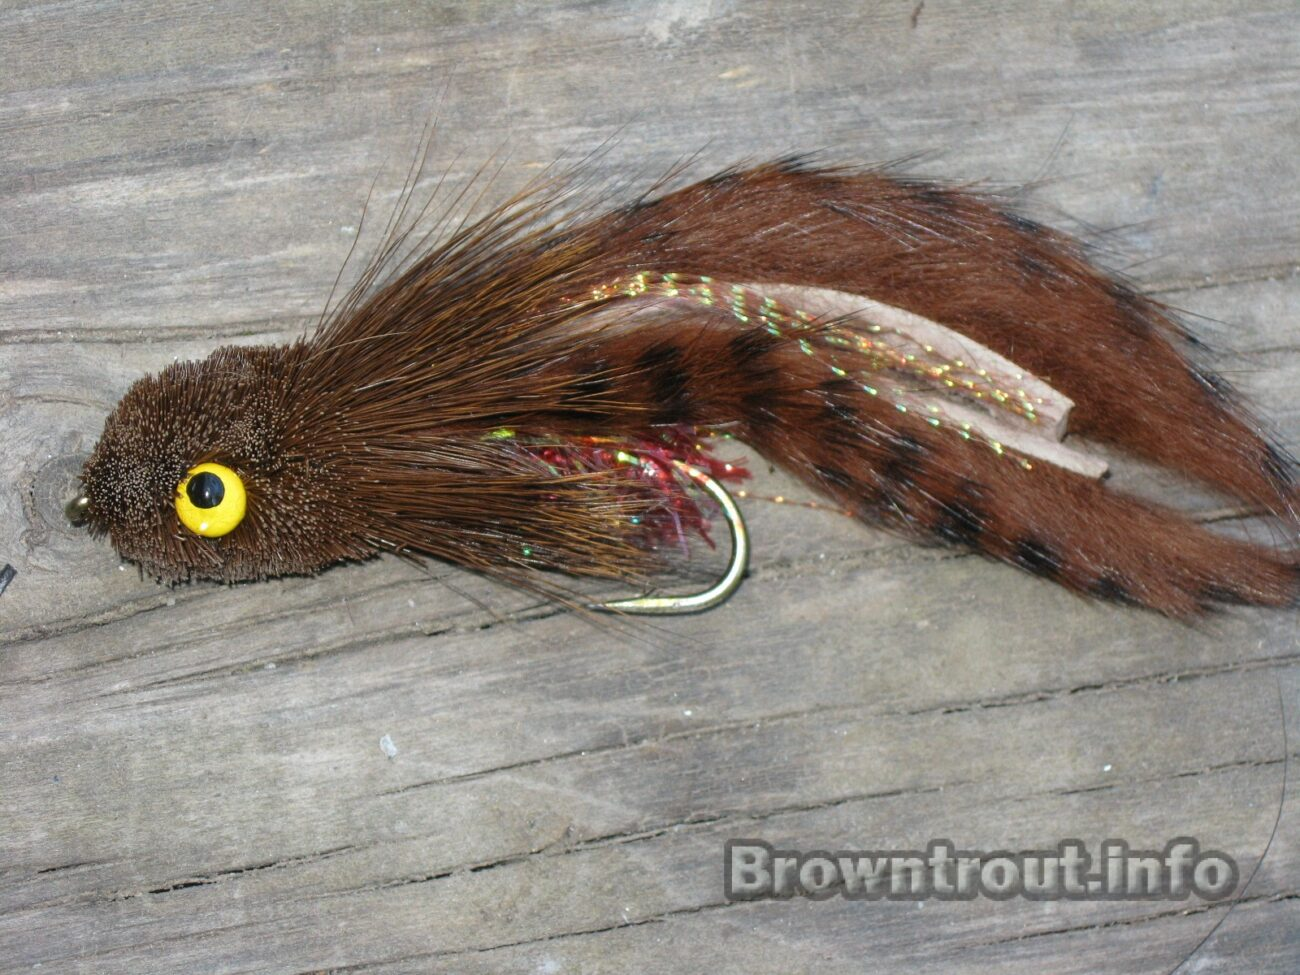 Lady Gaga streamer for large brown trout day or night, The best Mouse fly patterns for fly fishing trout at night, streamer fly patterns, streamer flies for trout, mice tails for trout, trout streamer patterns